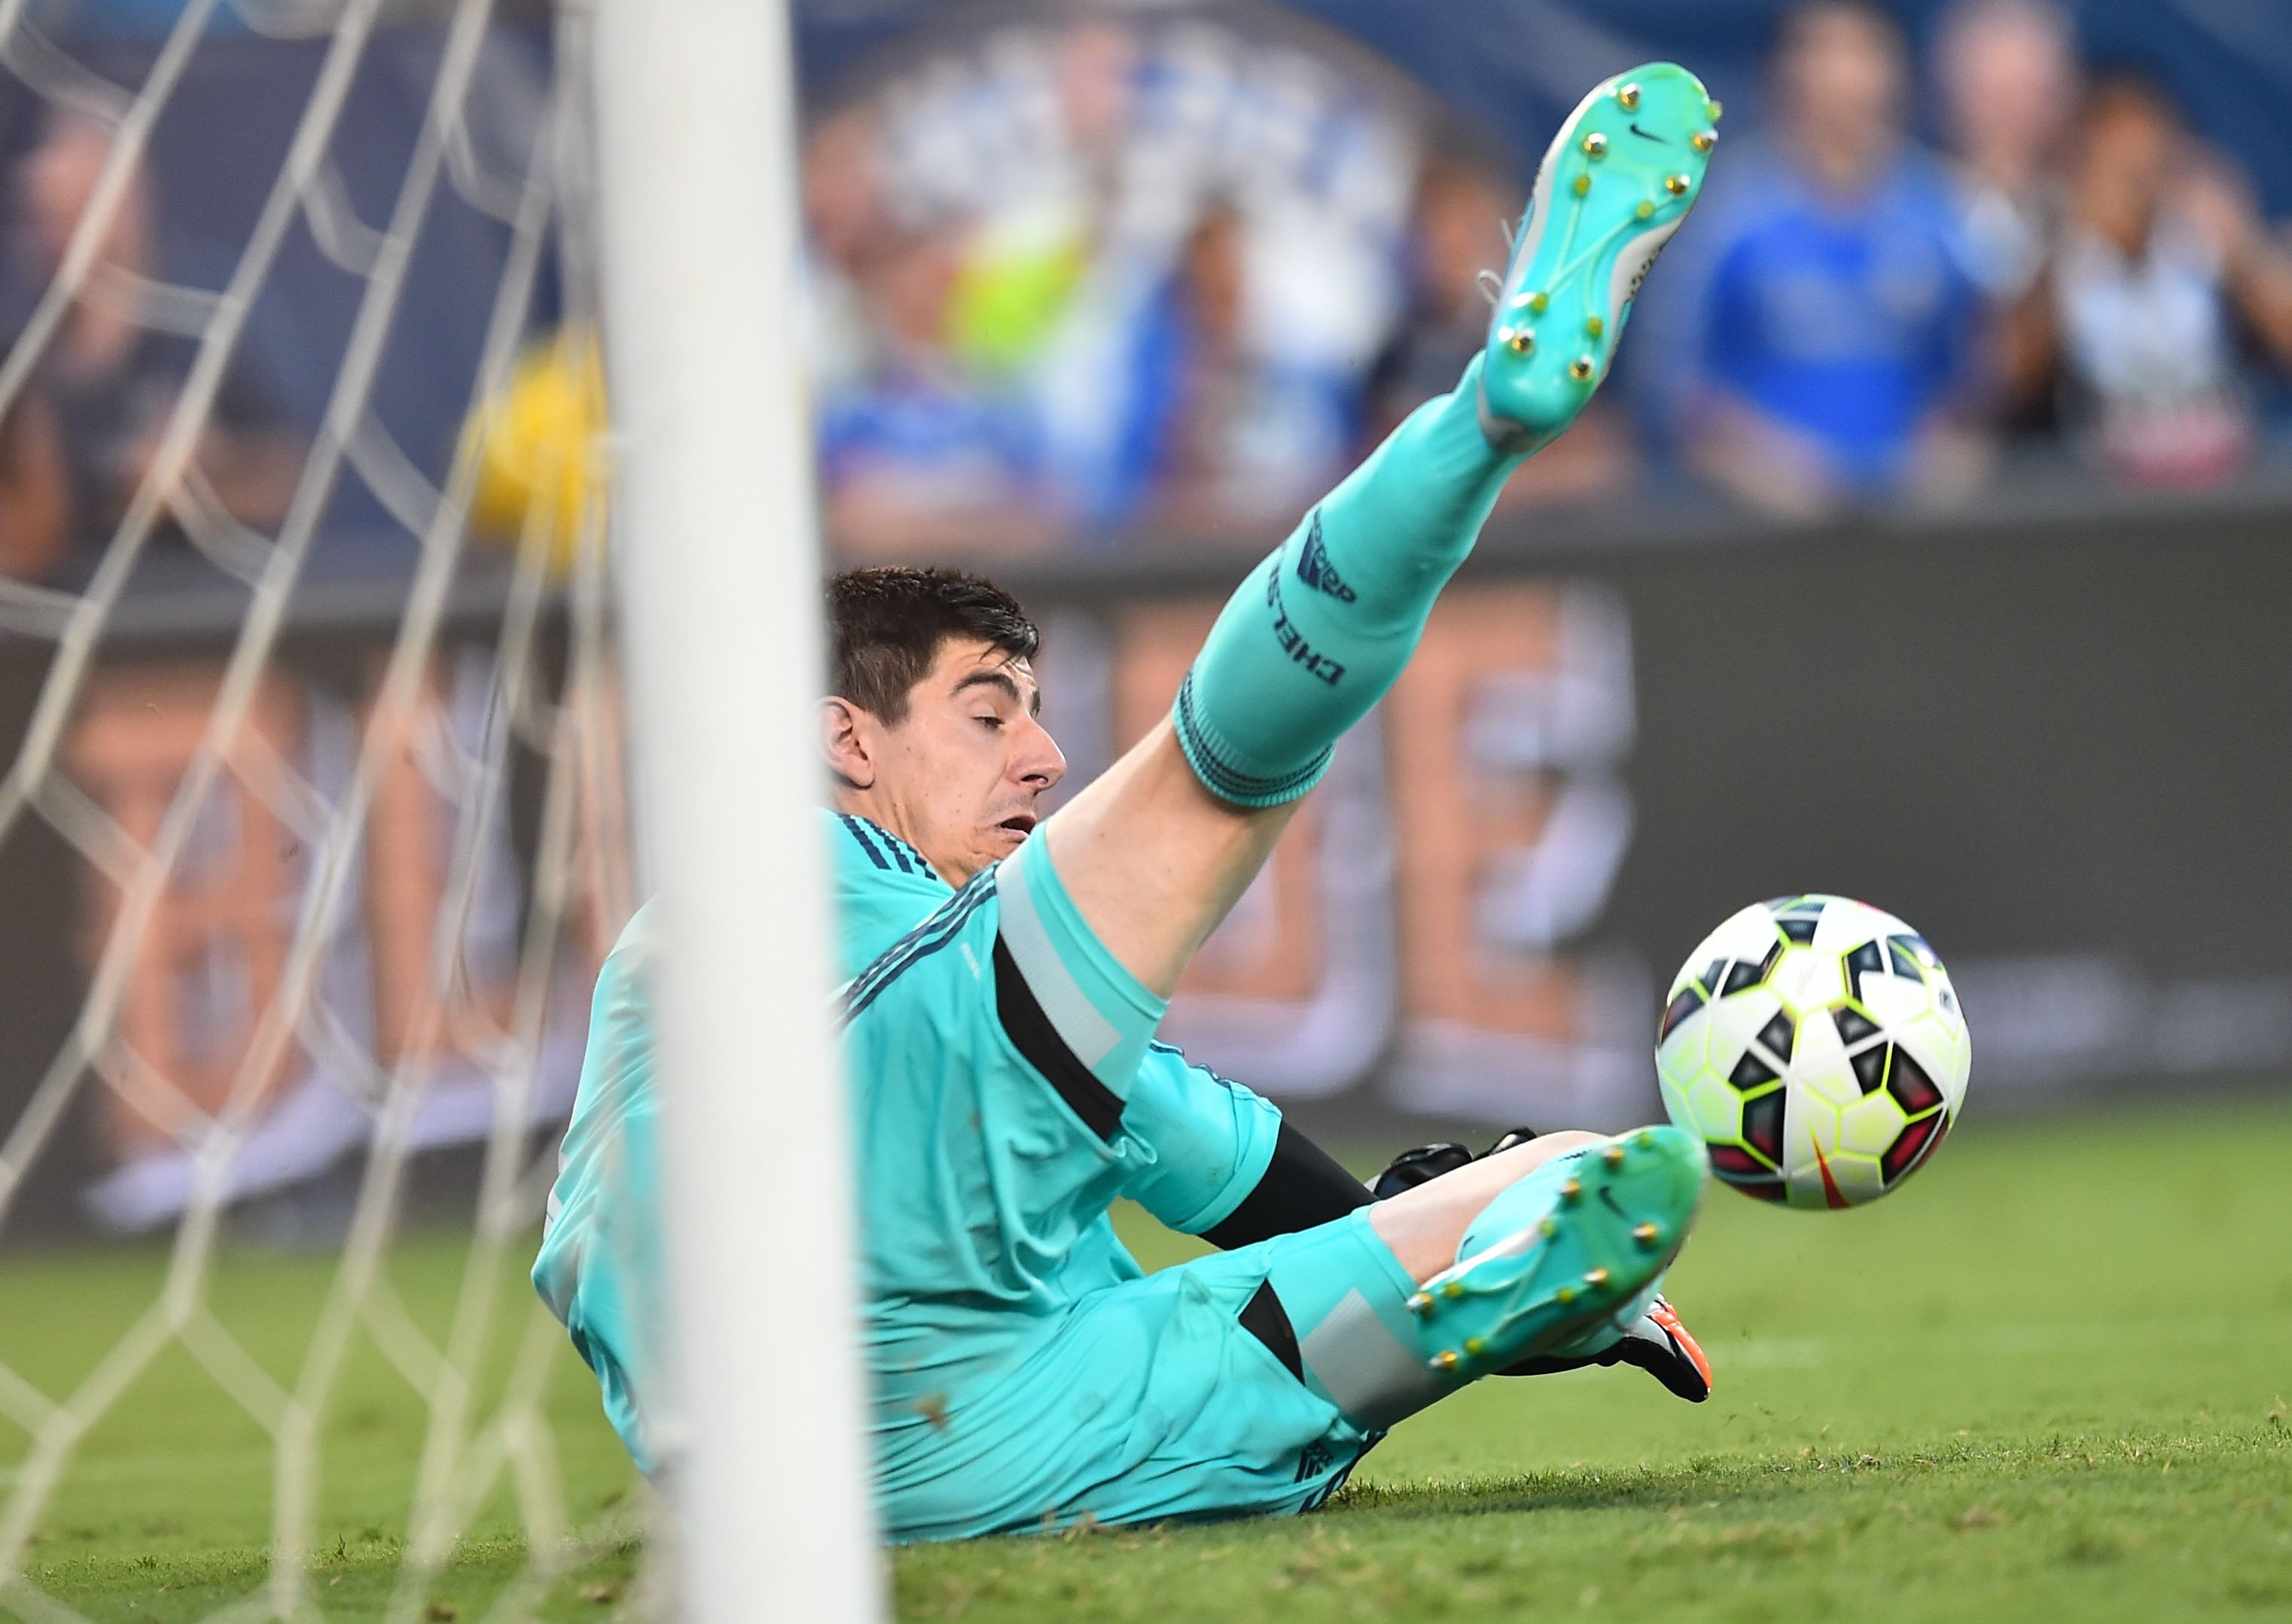 Goalkeeper Thibaut Courtois blasts home unstoppable penalty for